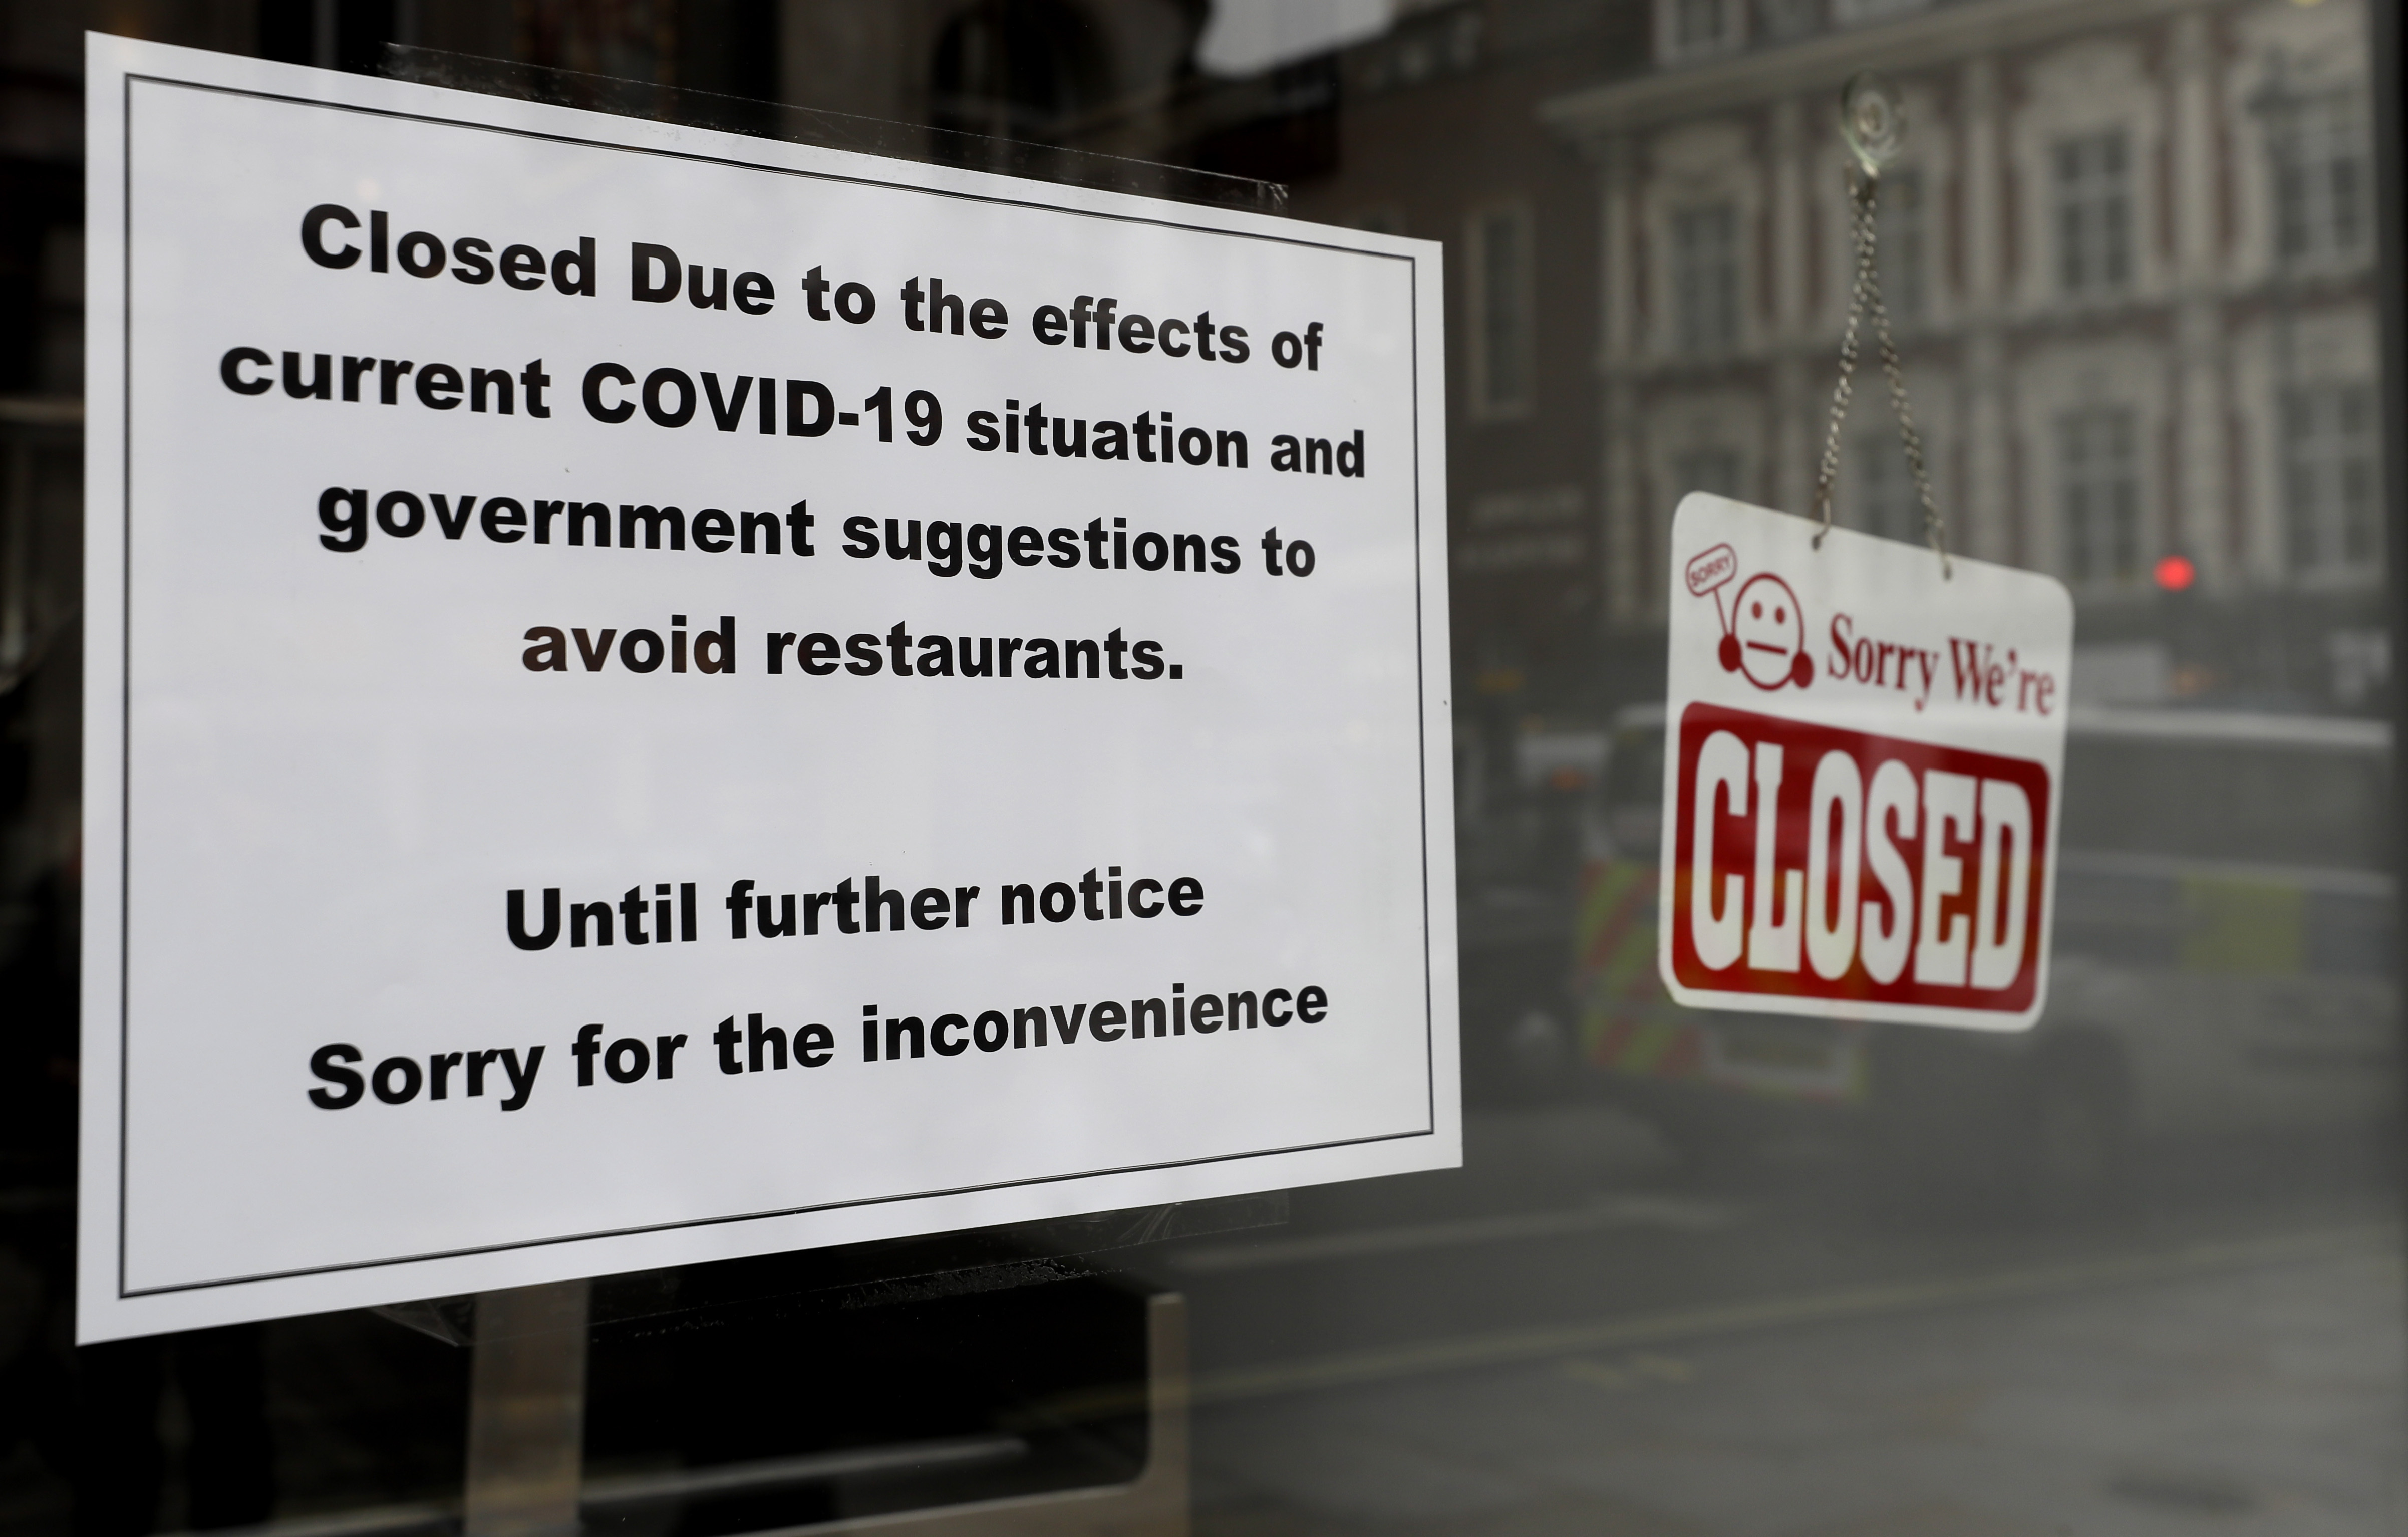 More than 110,000 U.S. restaurants closed permanently or long-term, report  says | CBS 17